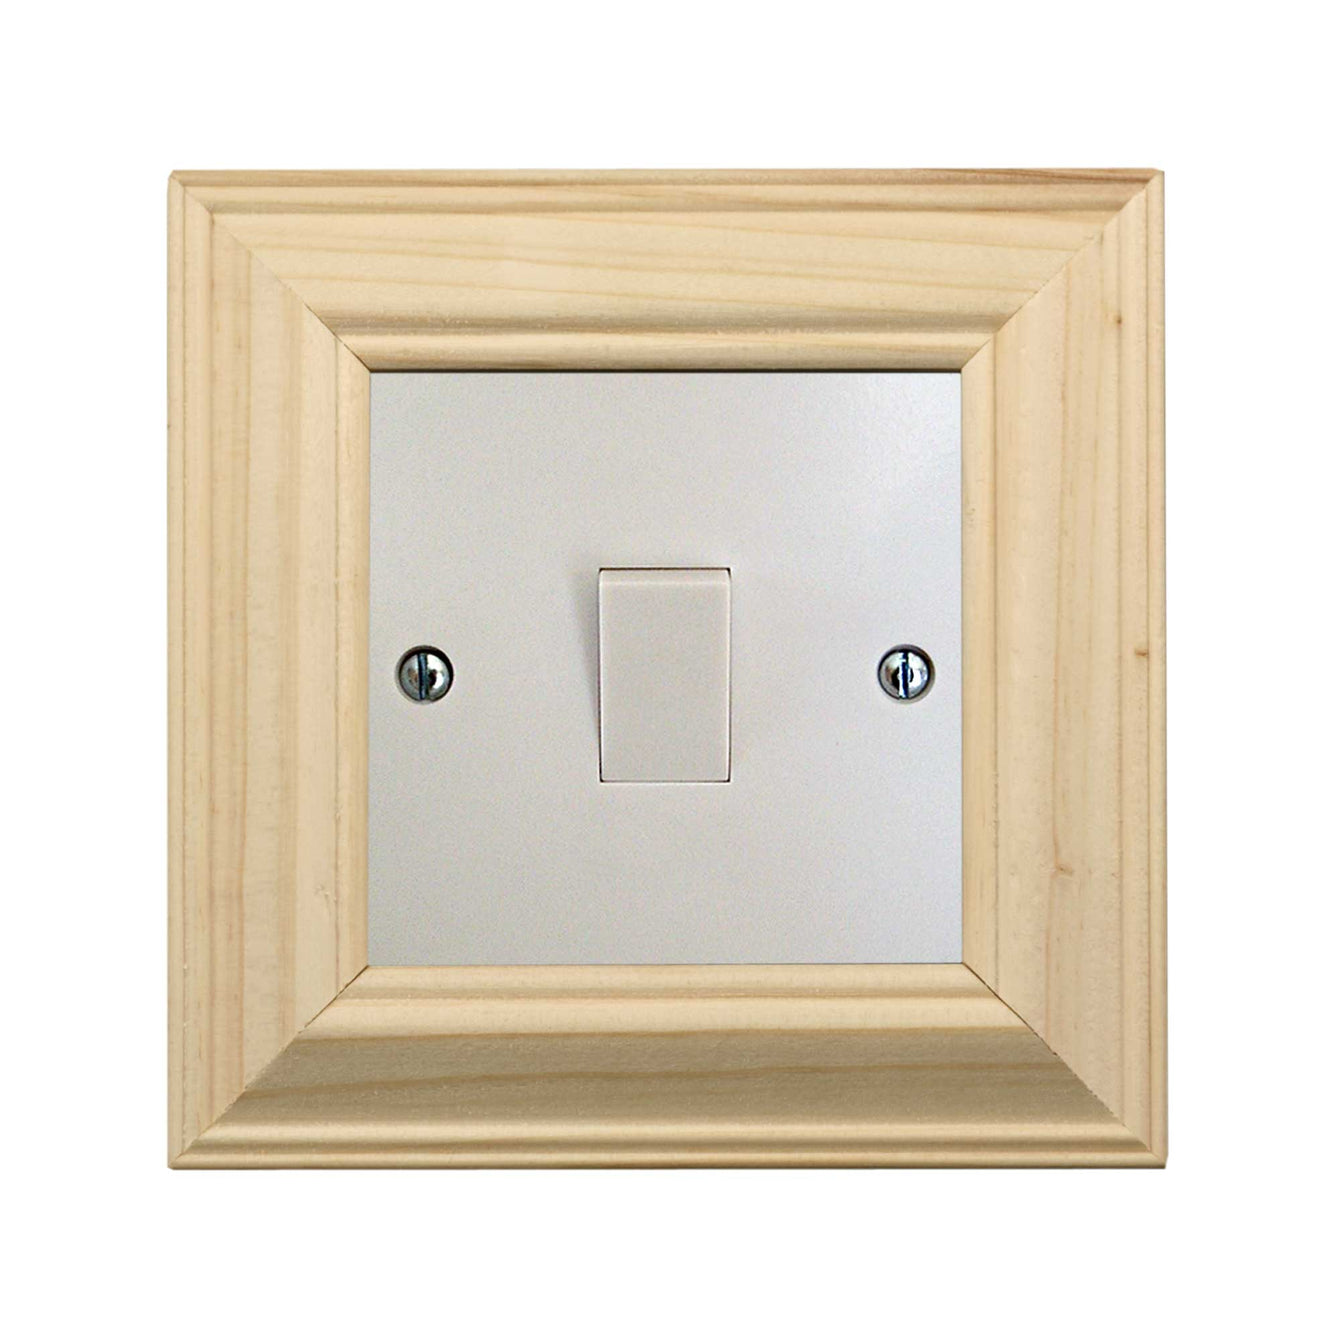 ElekTek Switch Surround Ovolo Frame Cover Finger Plate Pine Shades Honey Pine